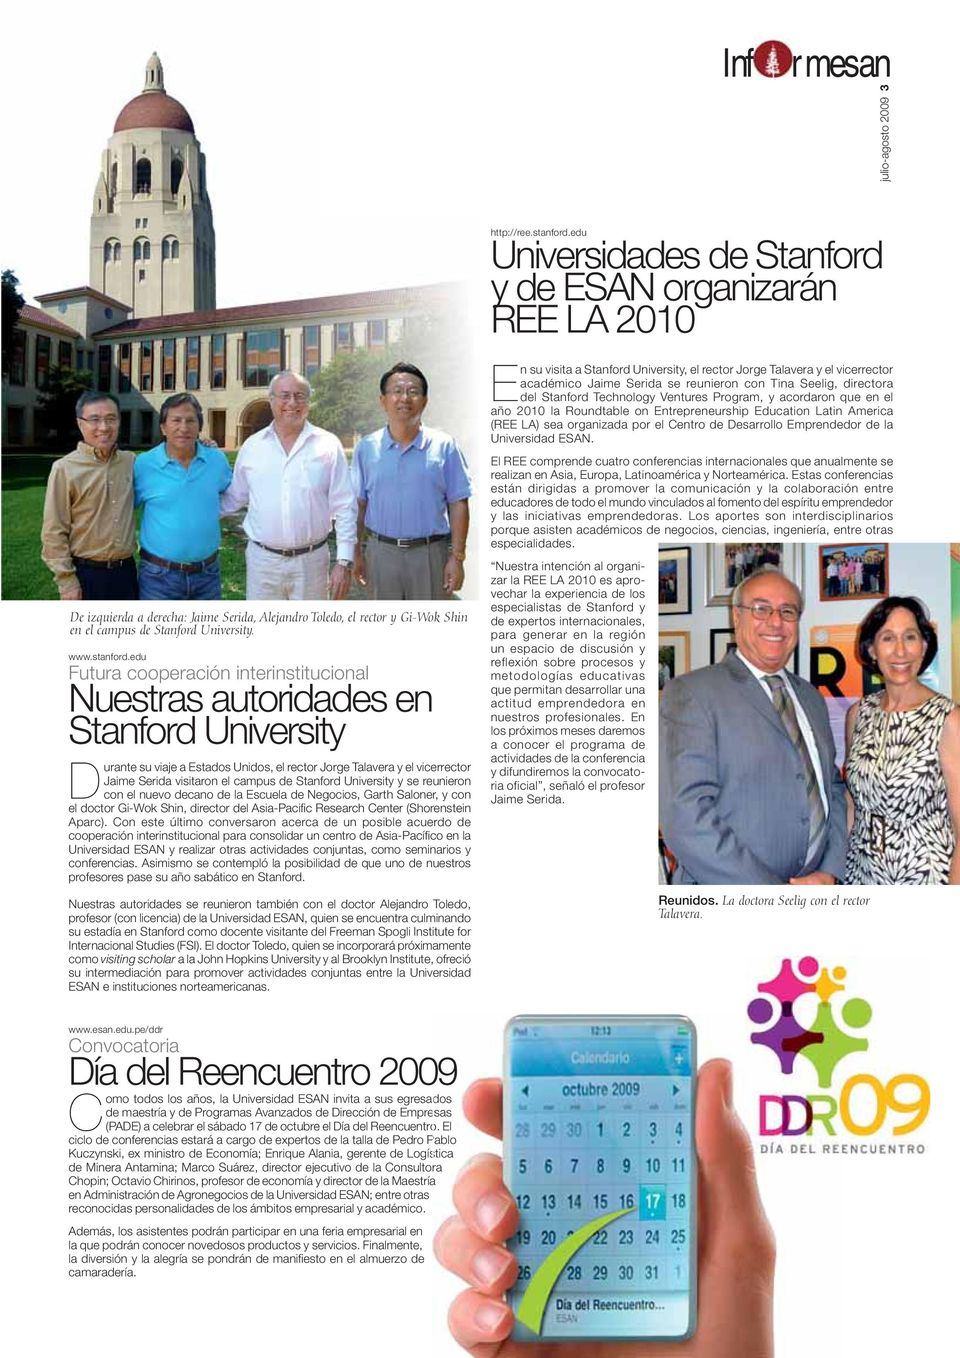 Stanford University y se reunieron con el nuevo decano de la Escuela de Negocios, Garth Saloner, y con el doctor Gi-Wok Shin, director del Asia-Pacifi c Research Center (Shorenstein Aparc).